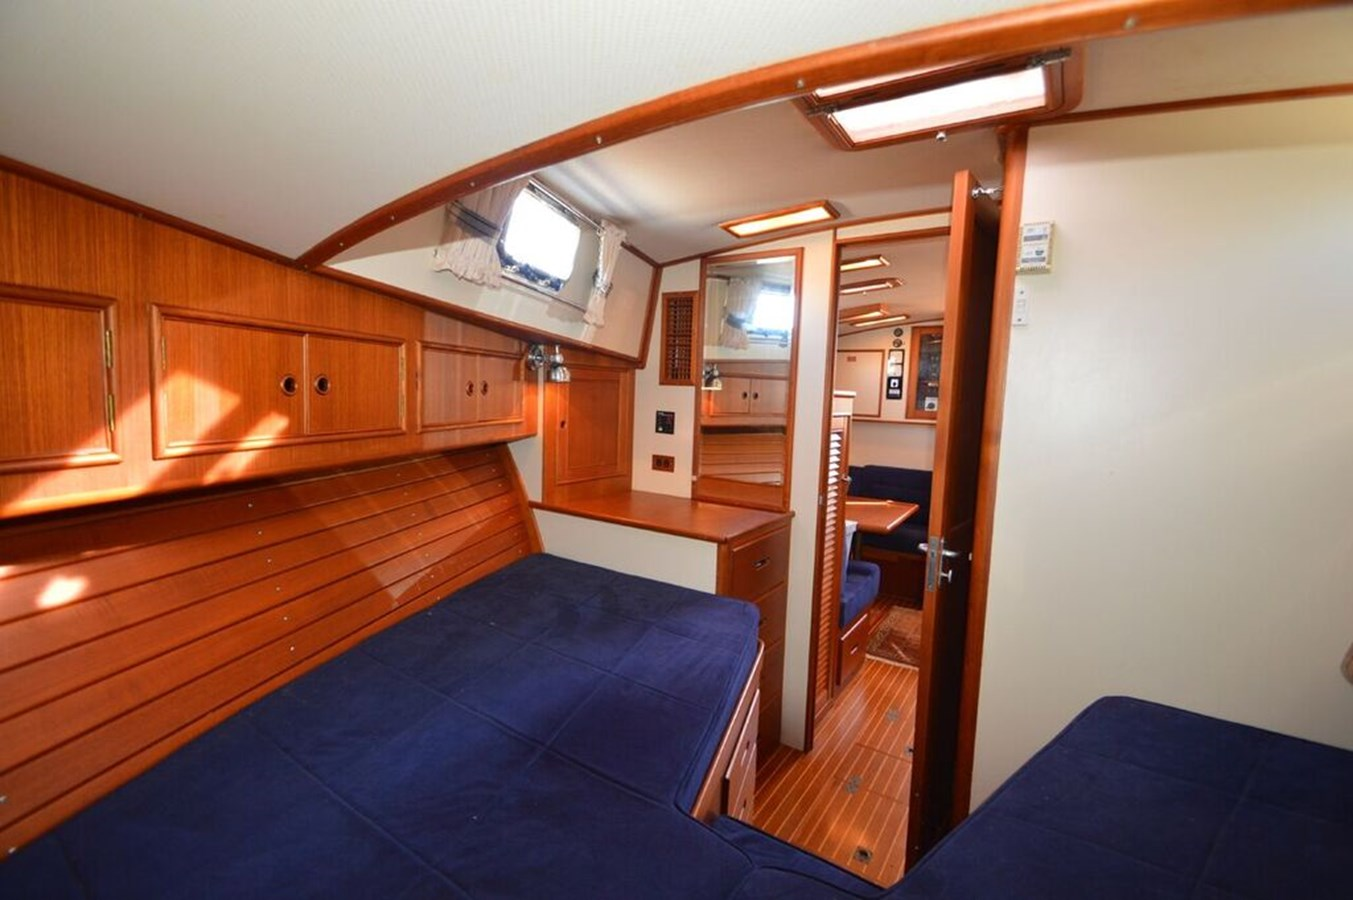 Cabin - 38 GRAND BANKS For Sale